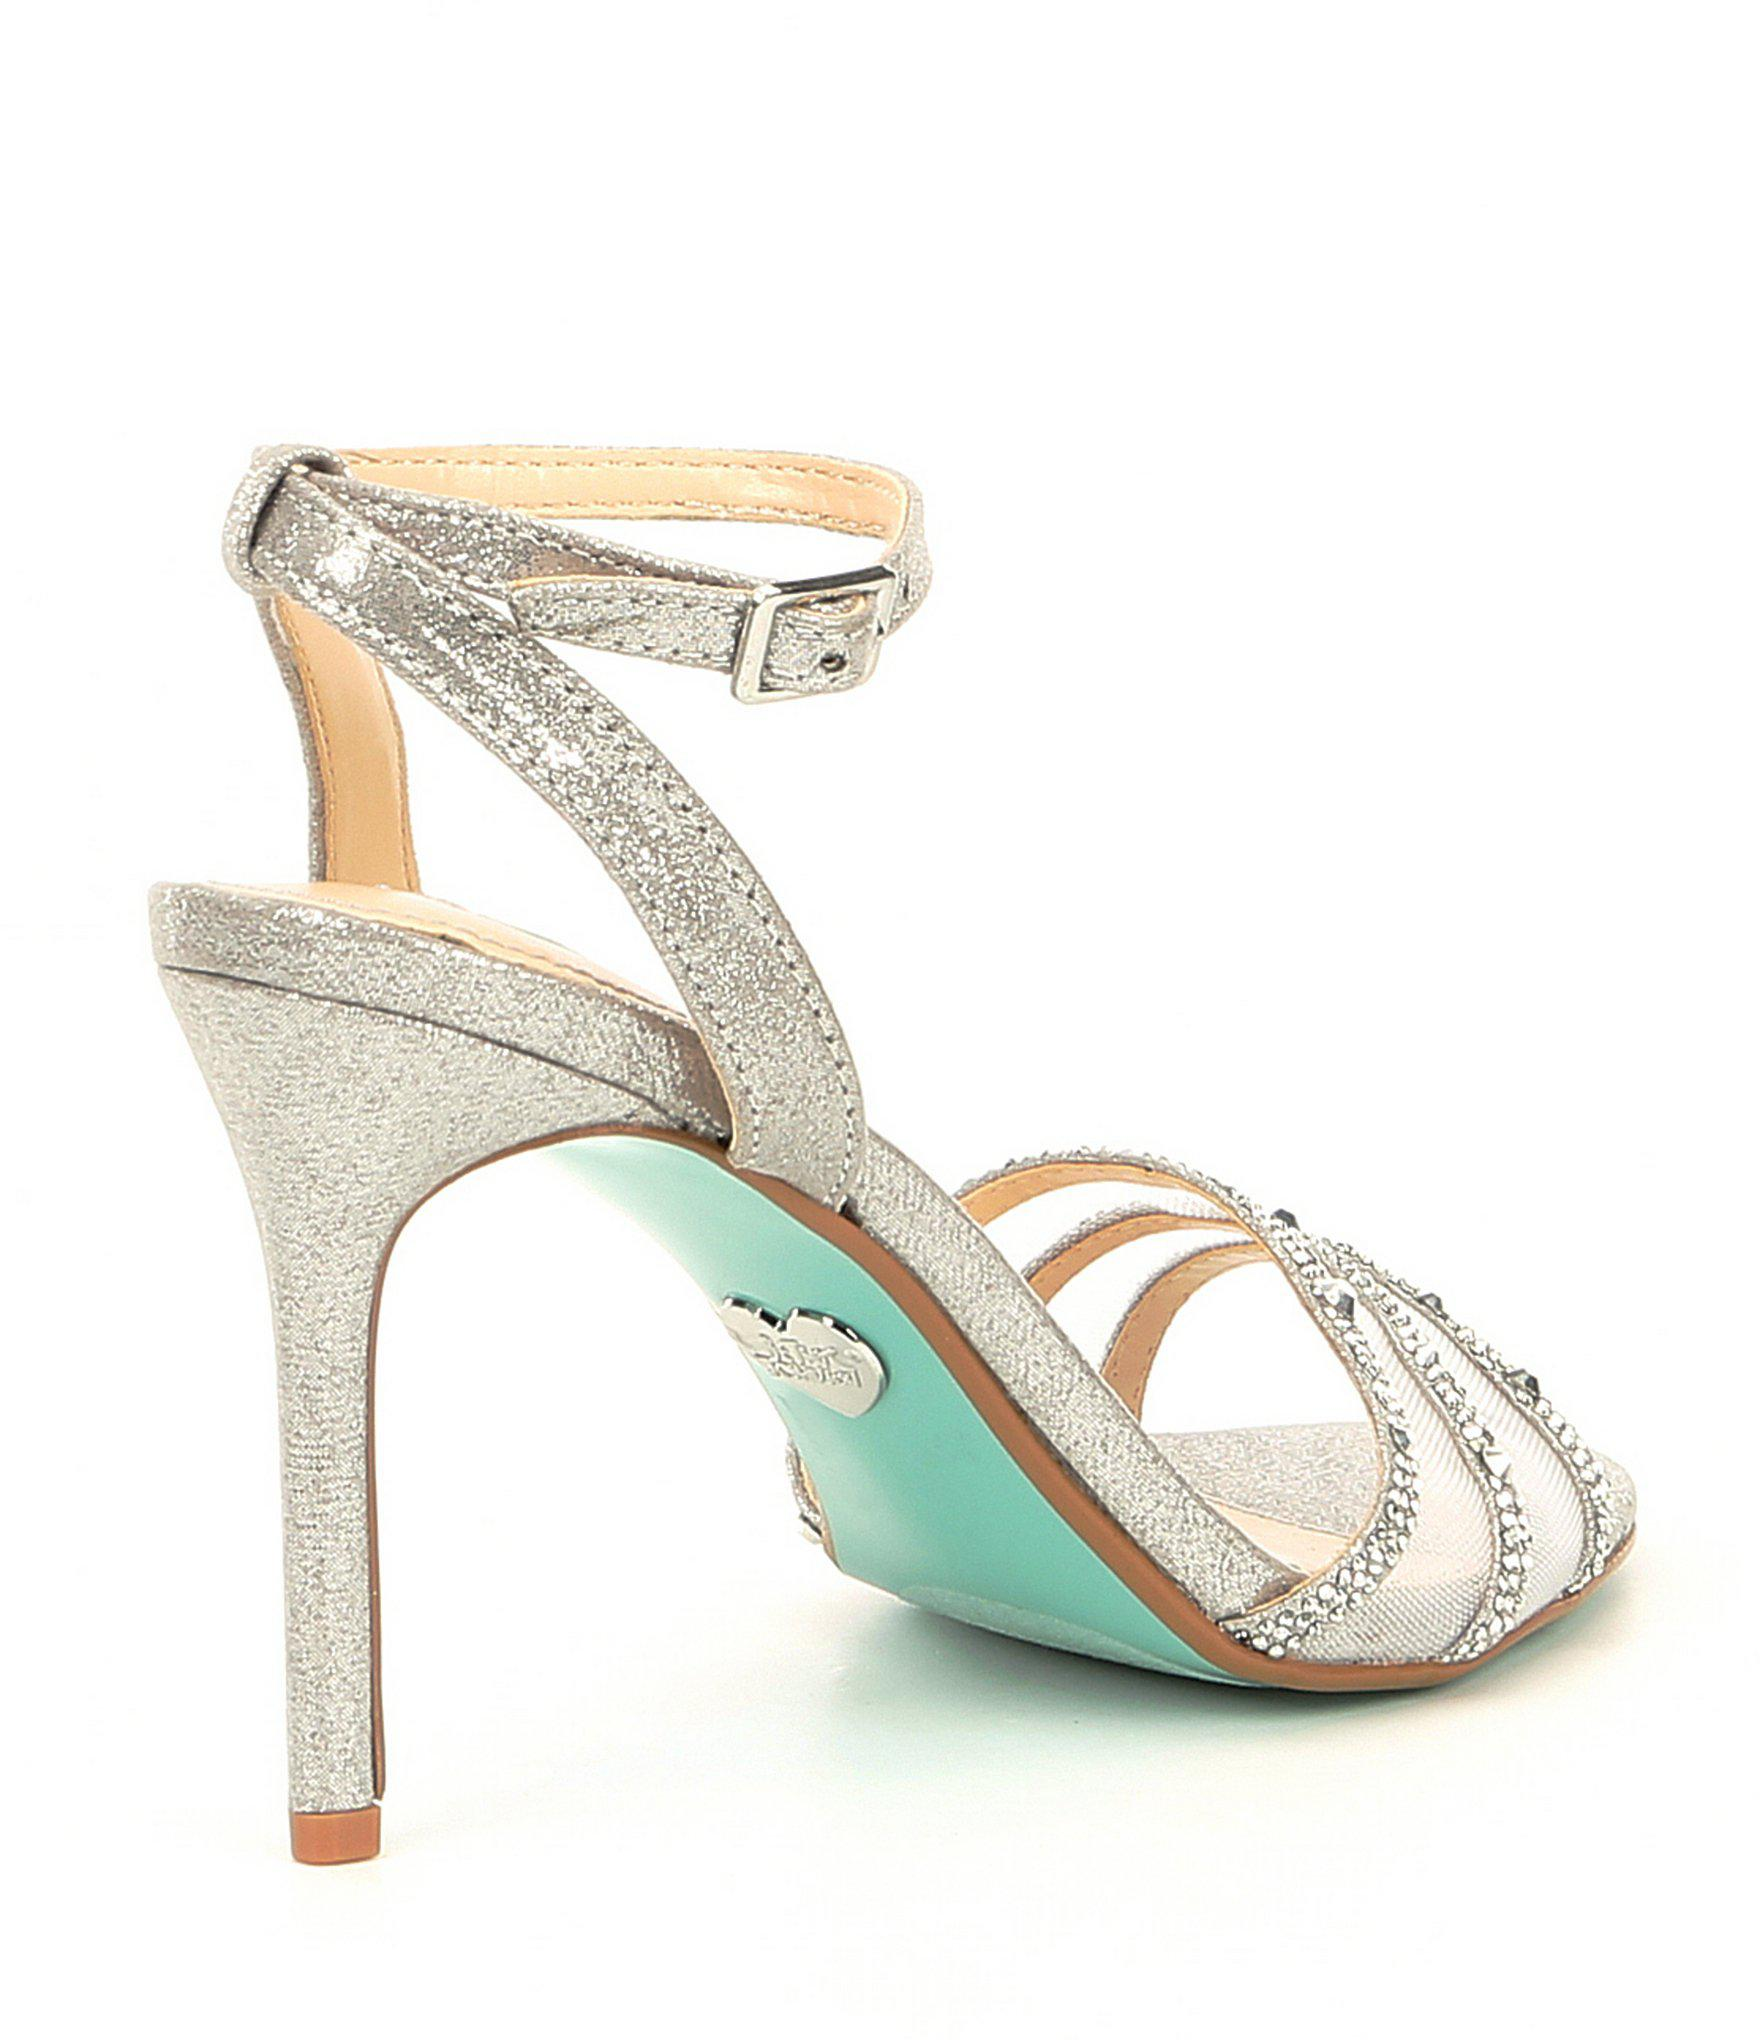 804b64a7d97 Betsey Johnson - Metallic Blue By Veda Jeweled Mesh Dress Sandals - Lyst.  View fullscreen